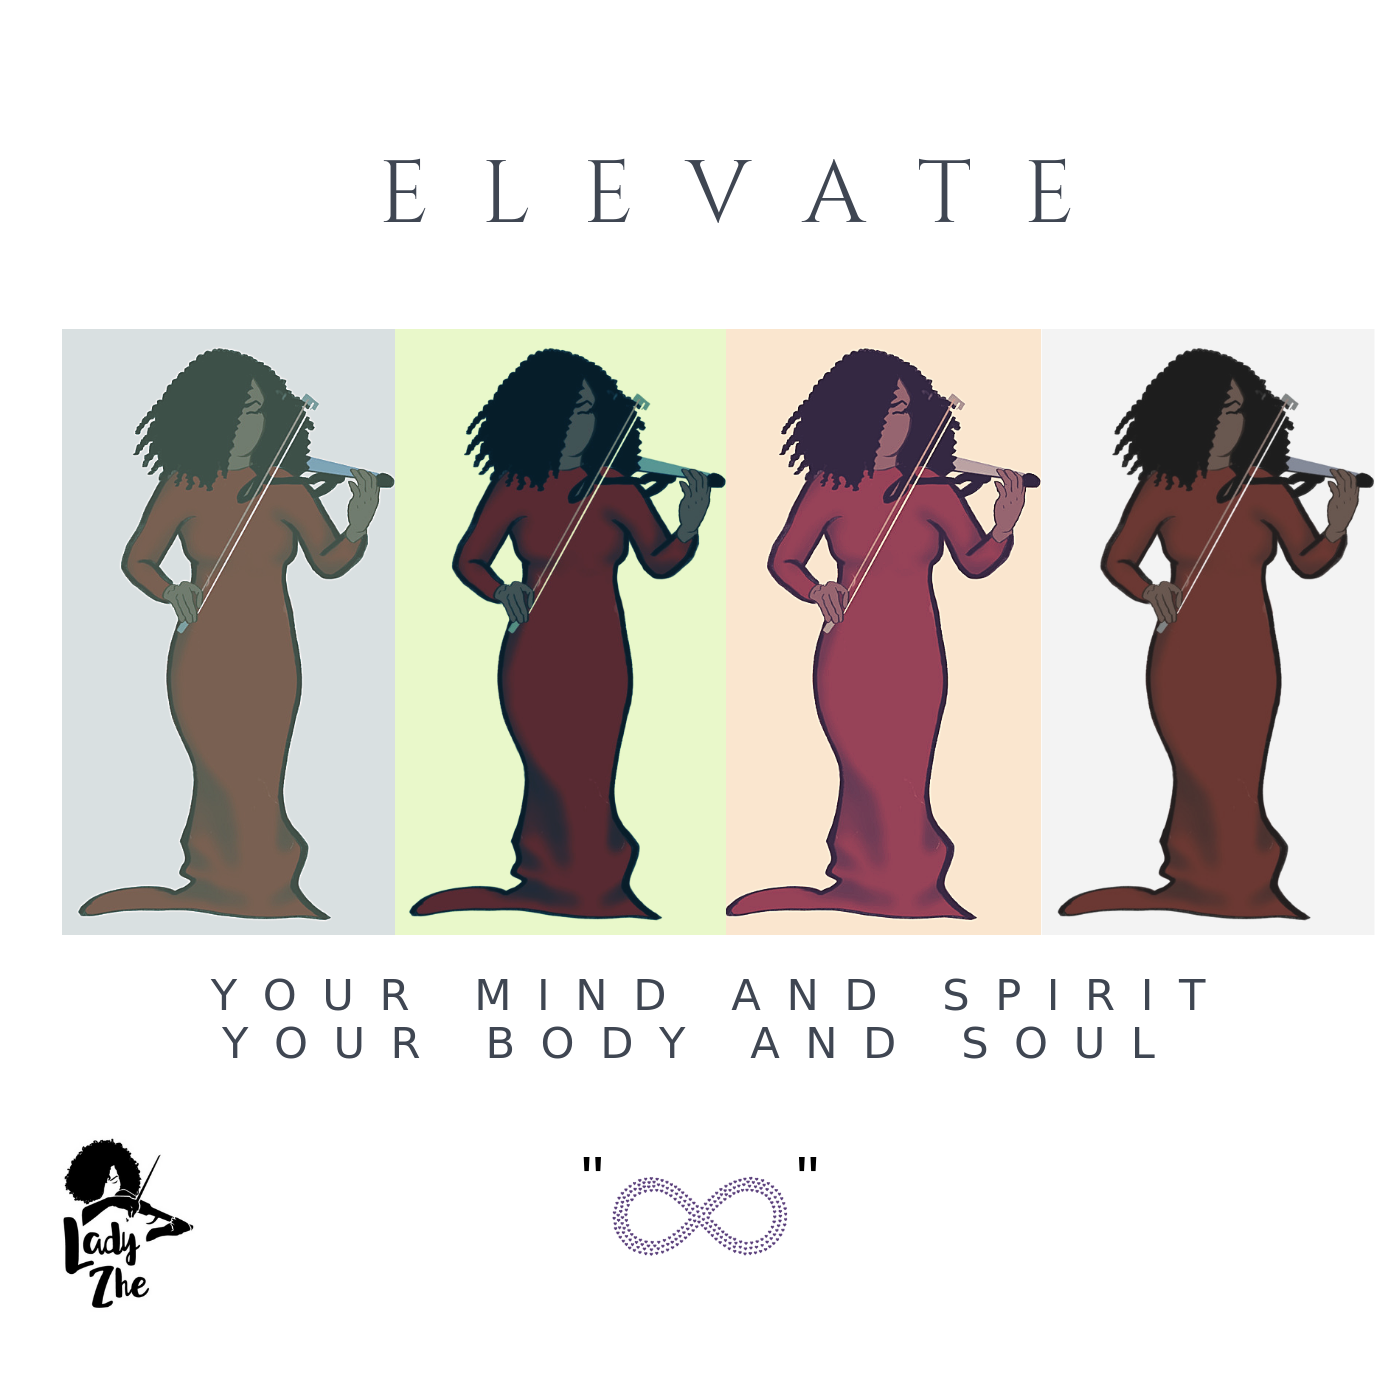 Elevate by Lady Zhe Cover Art